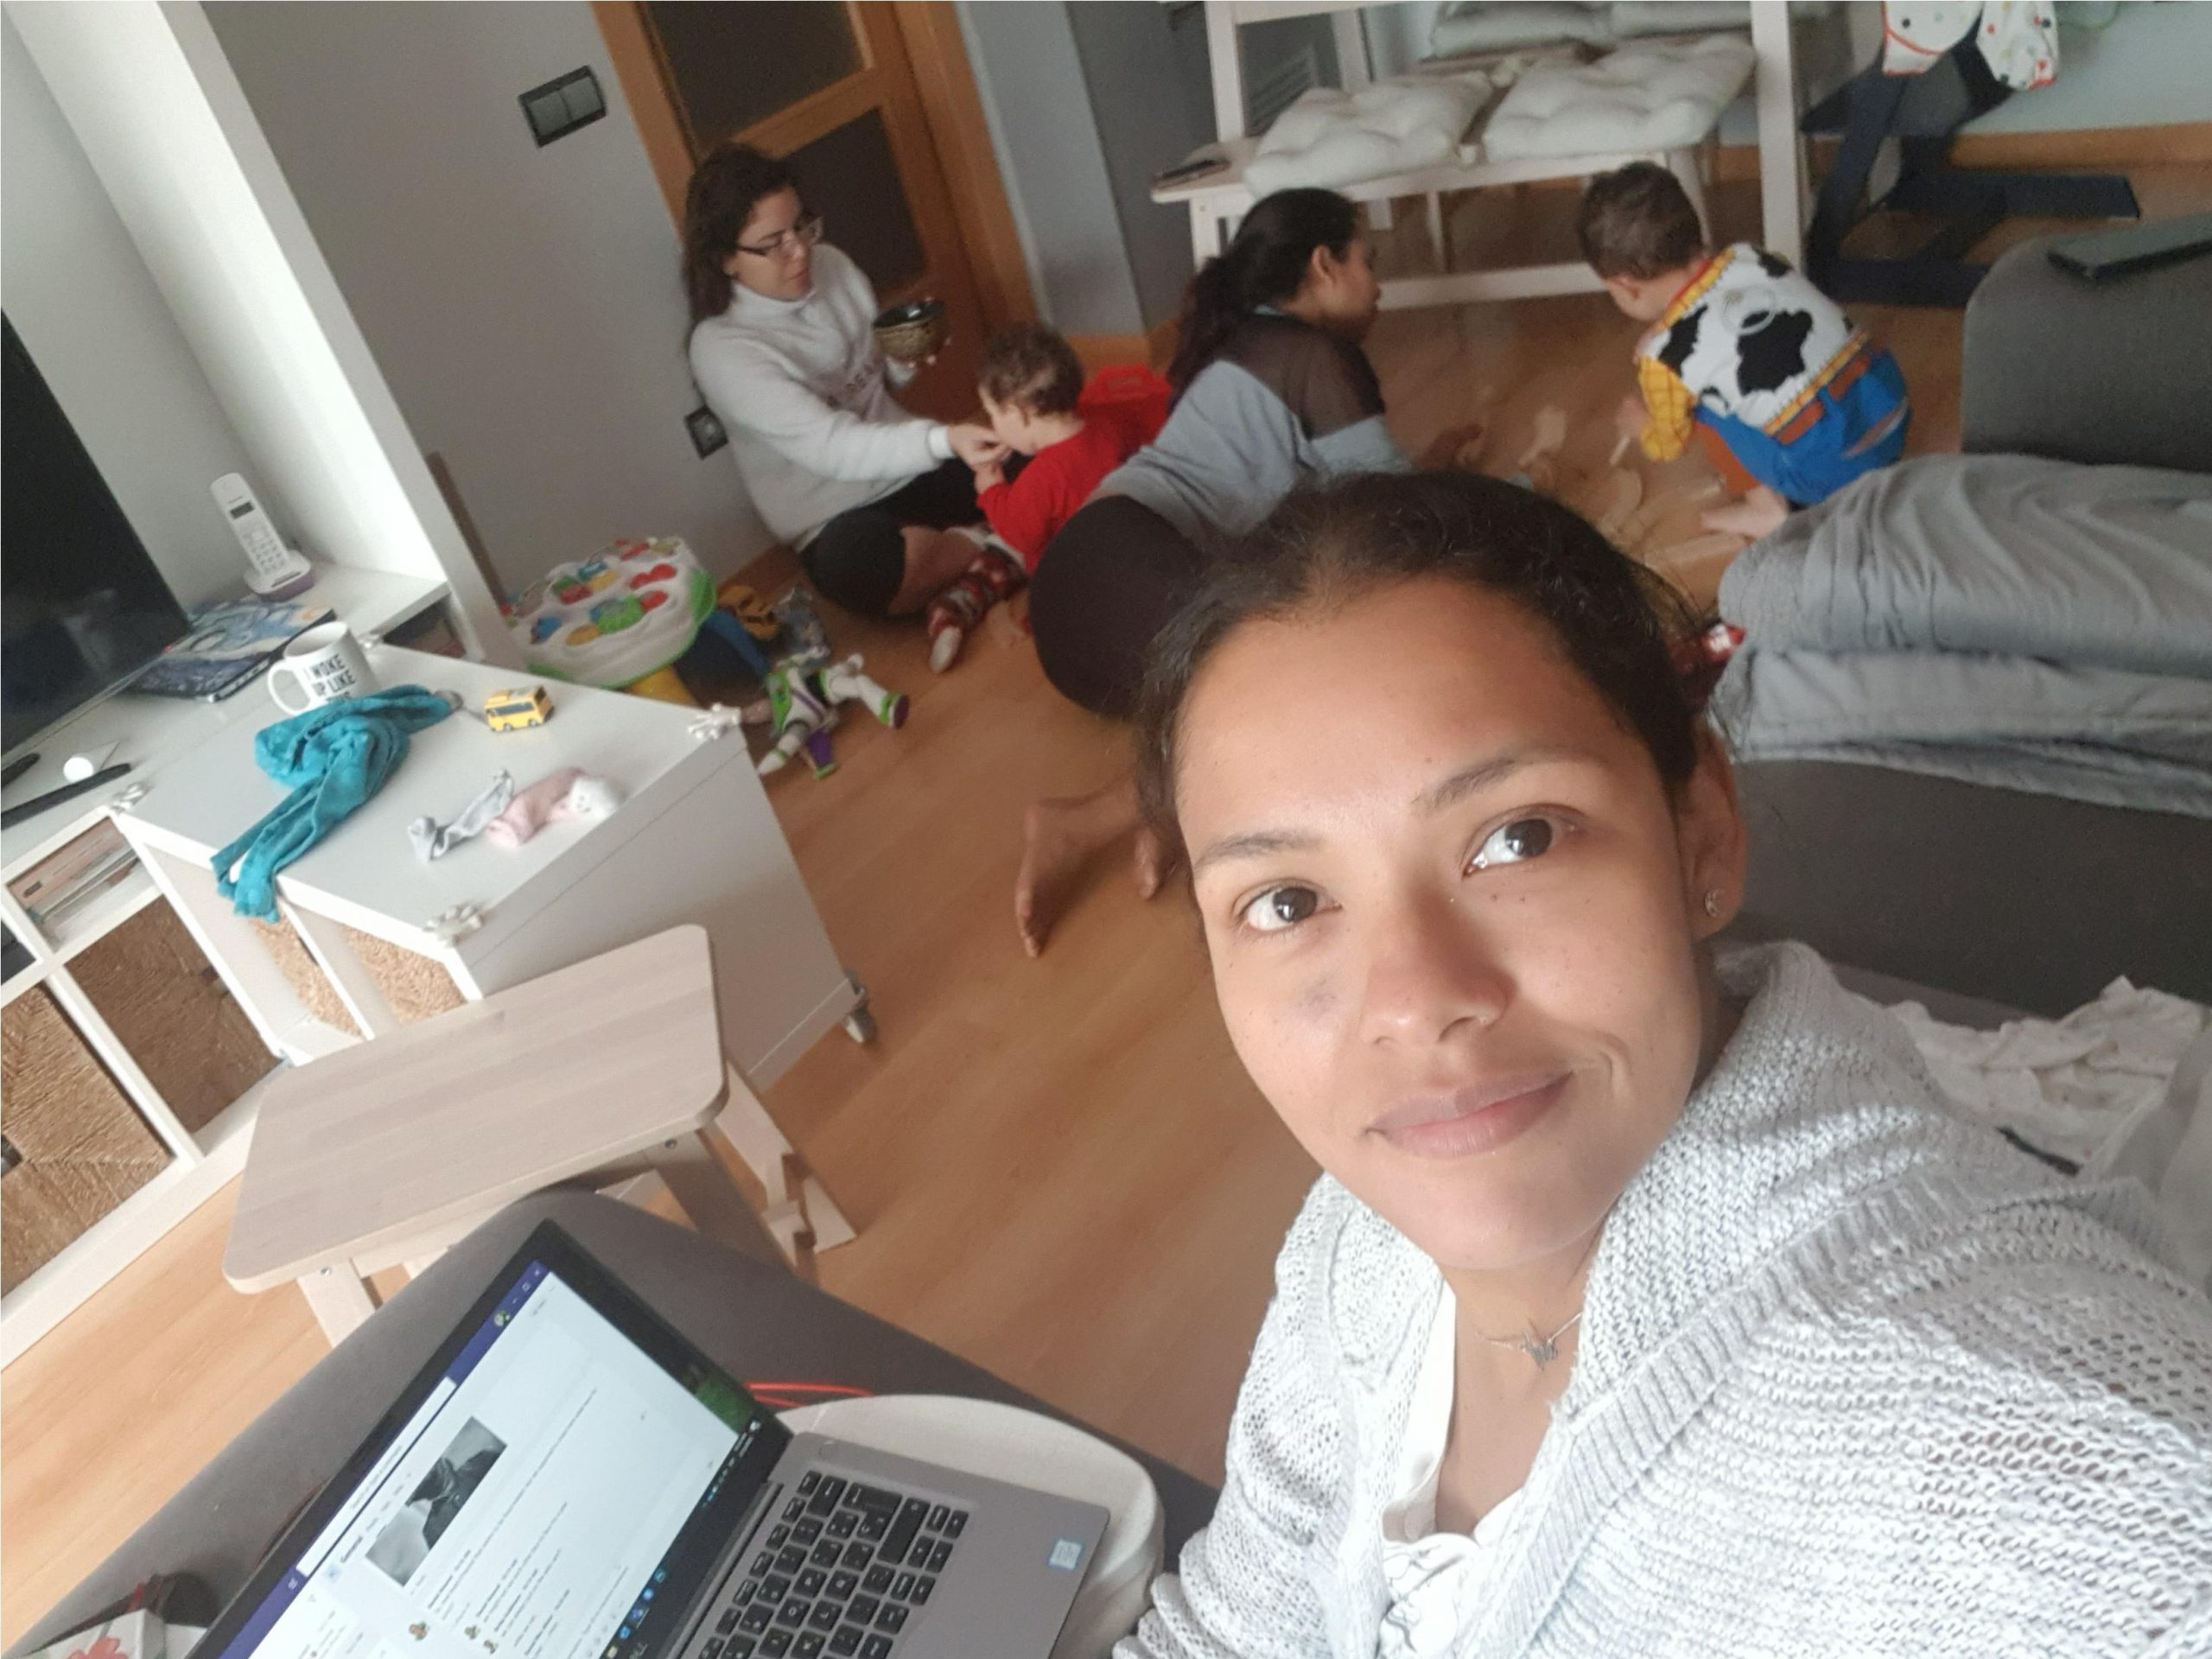 COVID19 & working from home (with two kids)